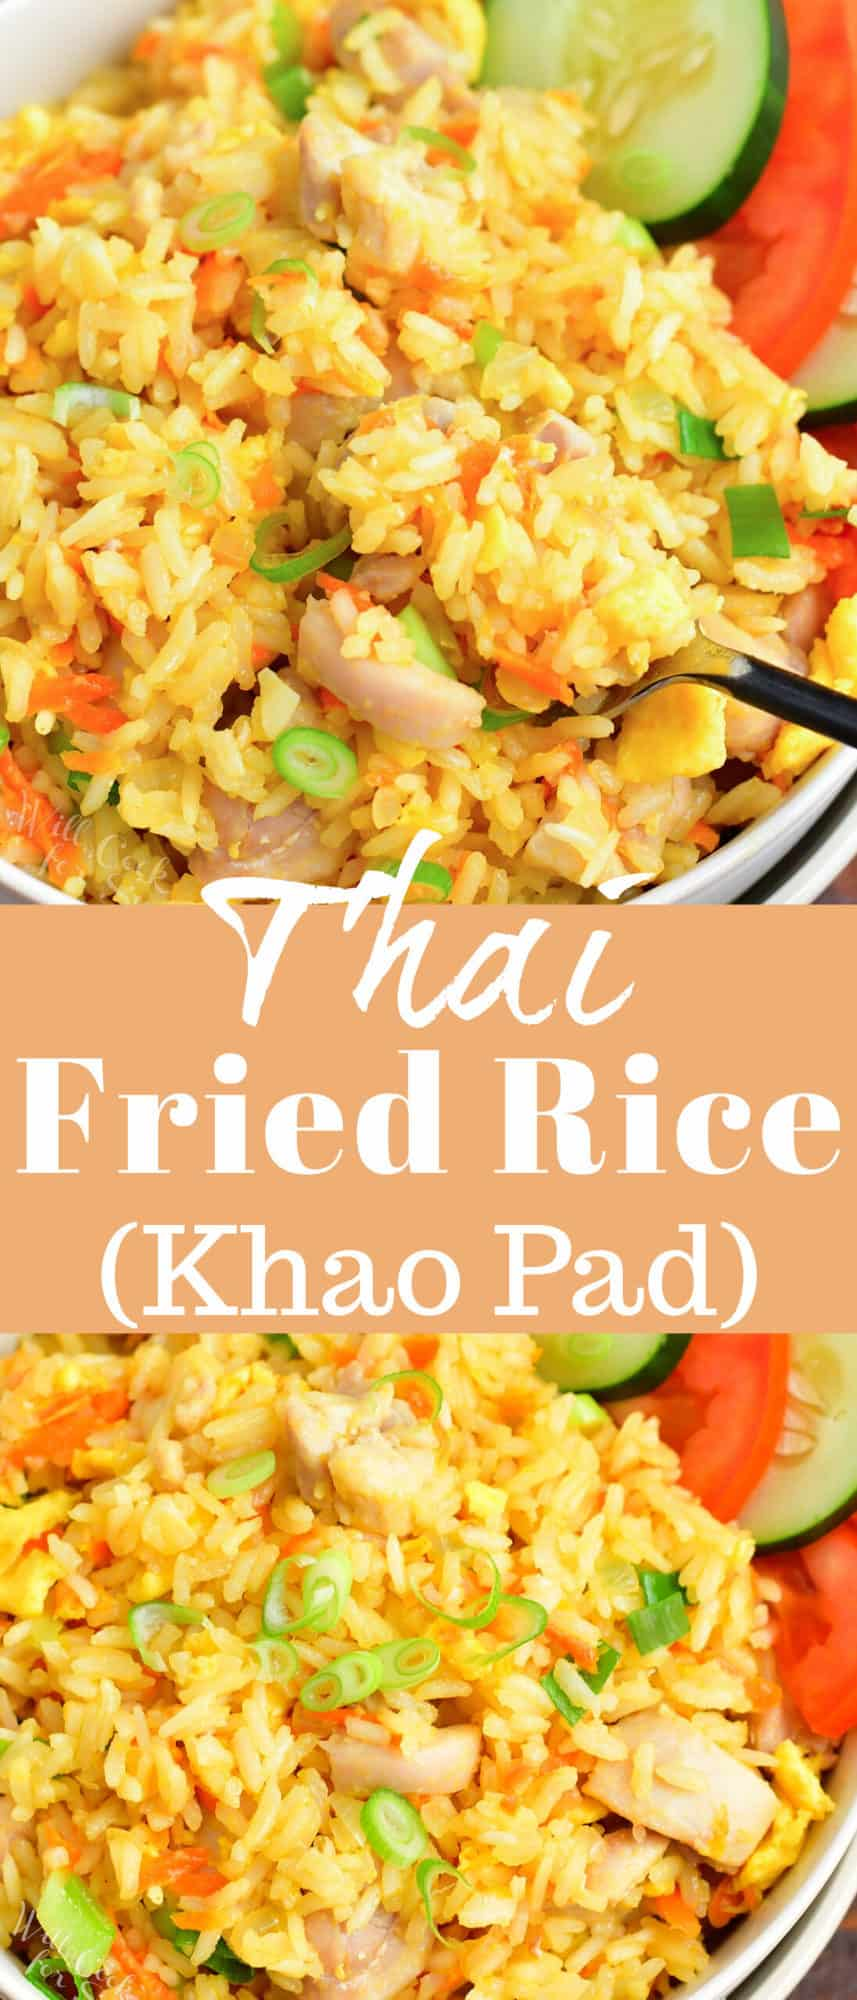 collage image of closeup view of fried rice and title in the middle